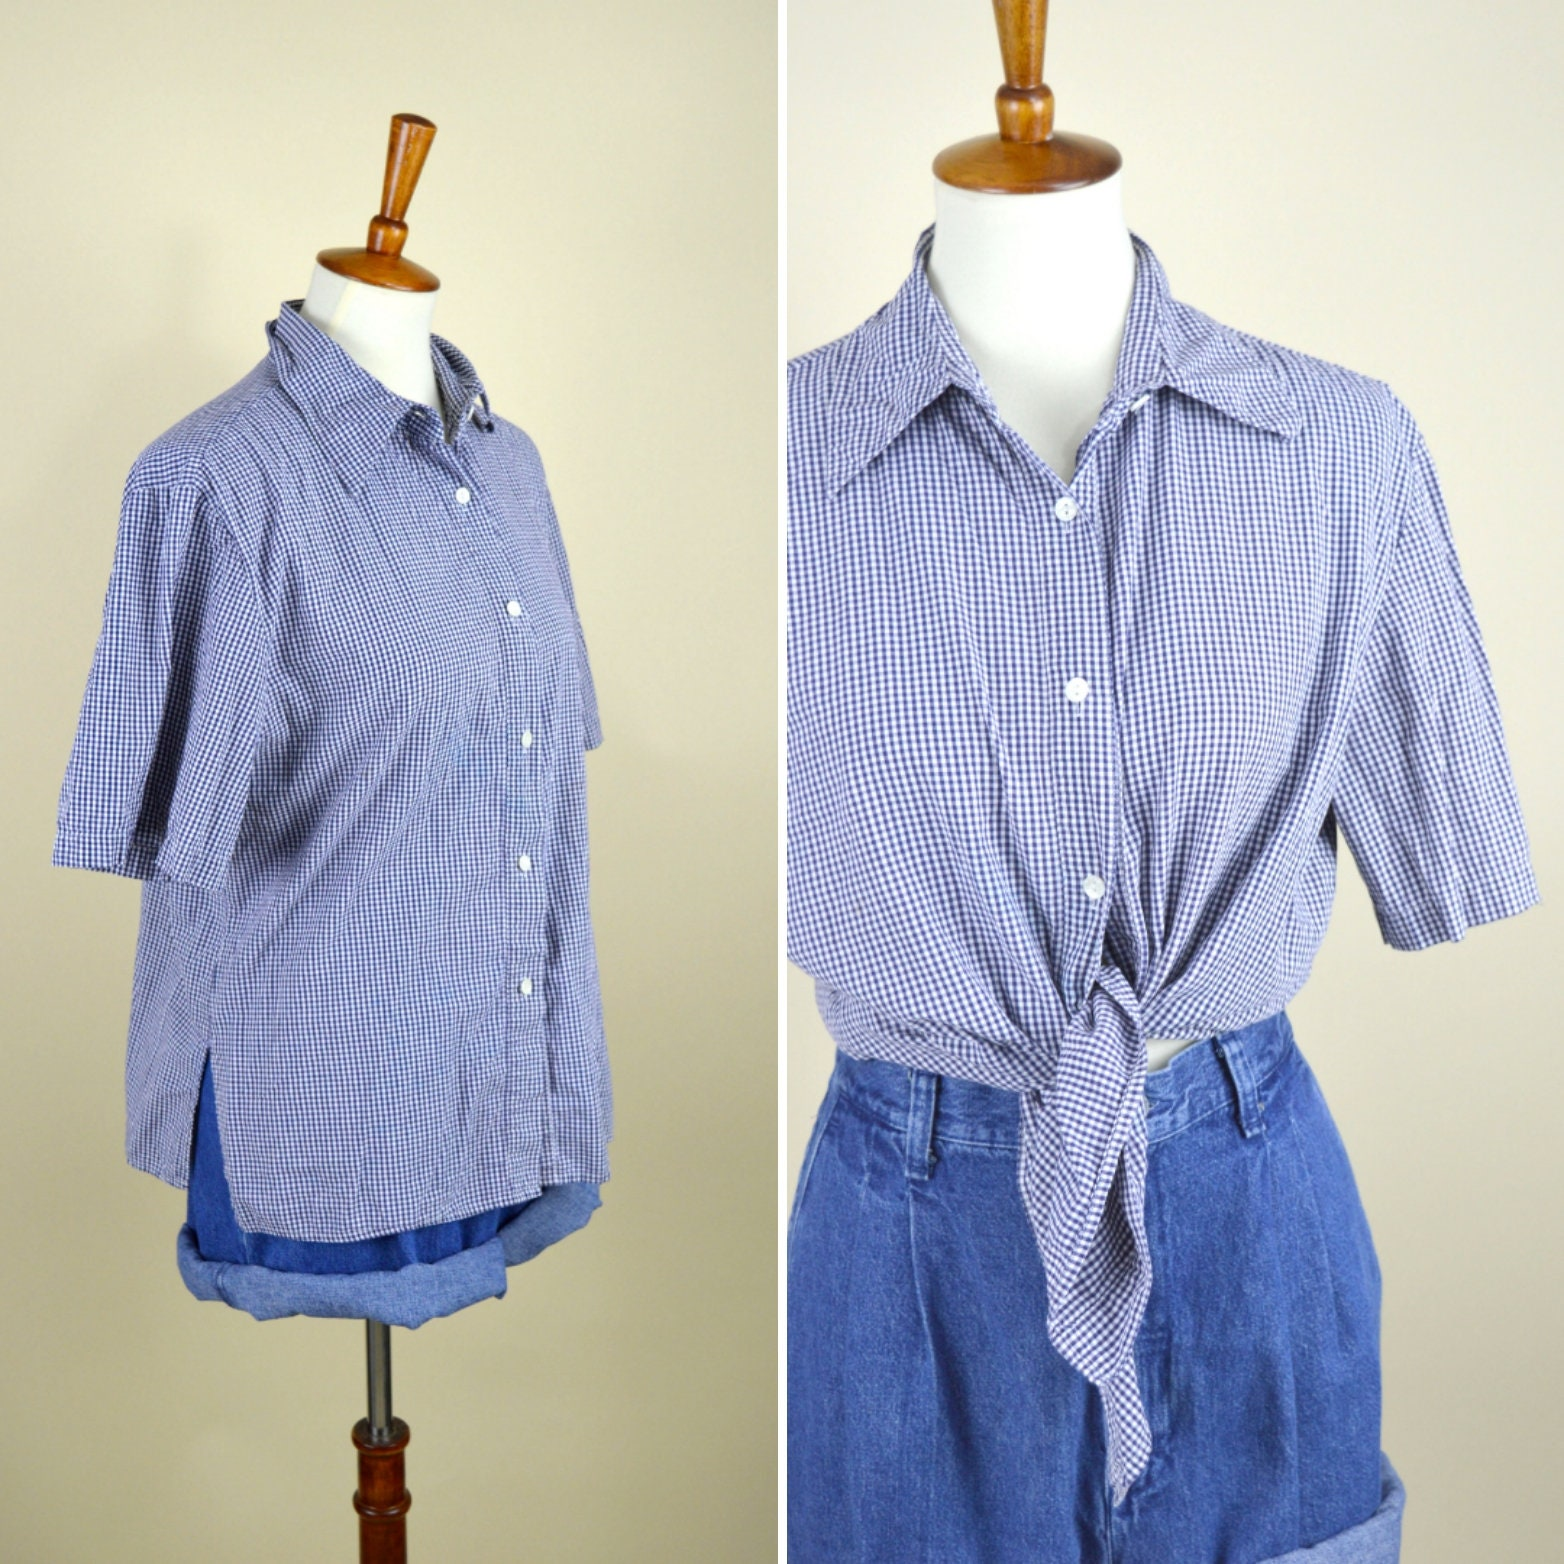 2eecb576cdf2a Vintage 90's Blue Gingham Plaid Casual Cotton Shirt - Short Sleeve Button  up Summer Top - Women's Size Large